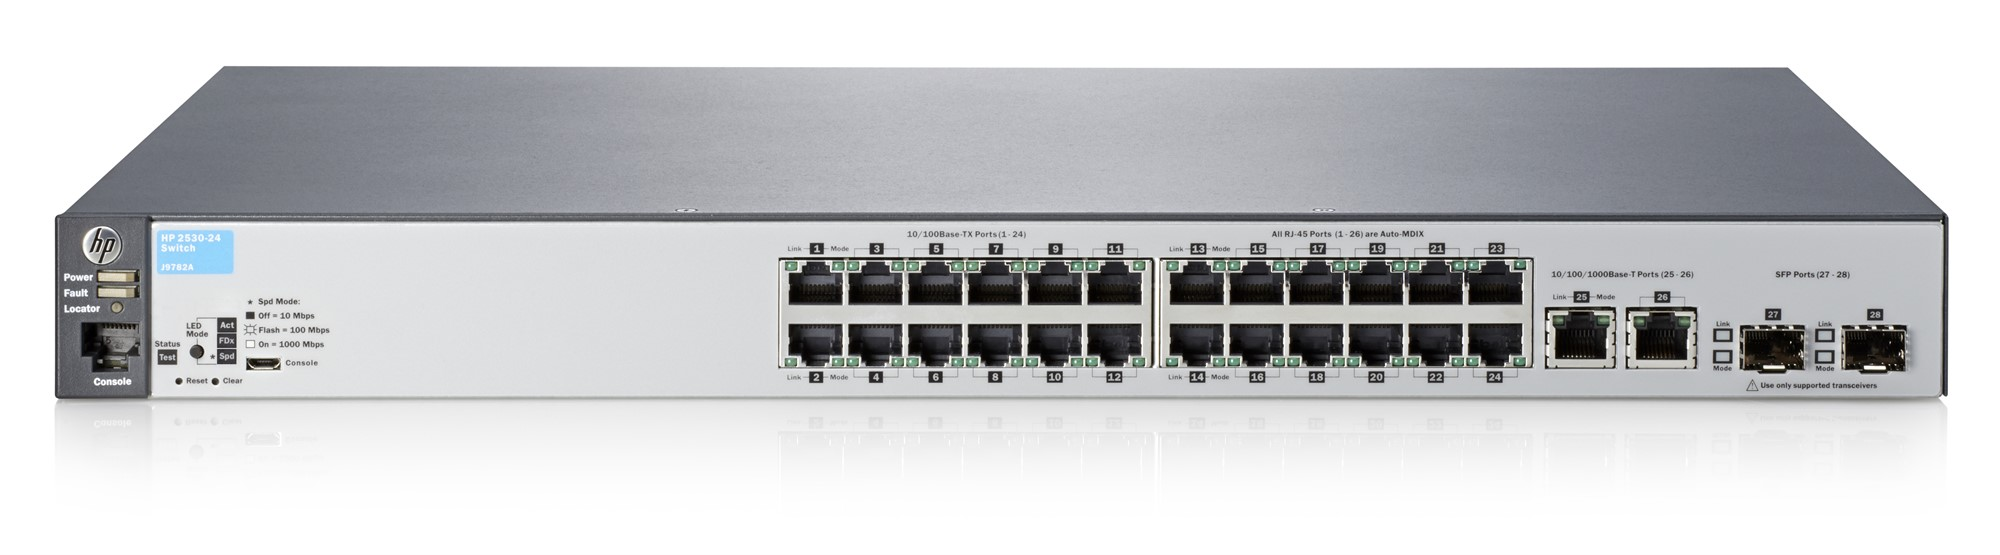 HPE J9782A#ABB ARUBA 2530-24 MANAGED NETWORK SWITCH L2 FAST ETHERNET (10/100) 1U GREY